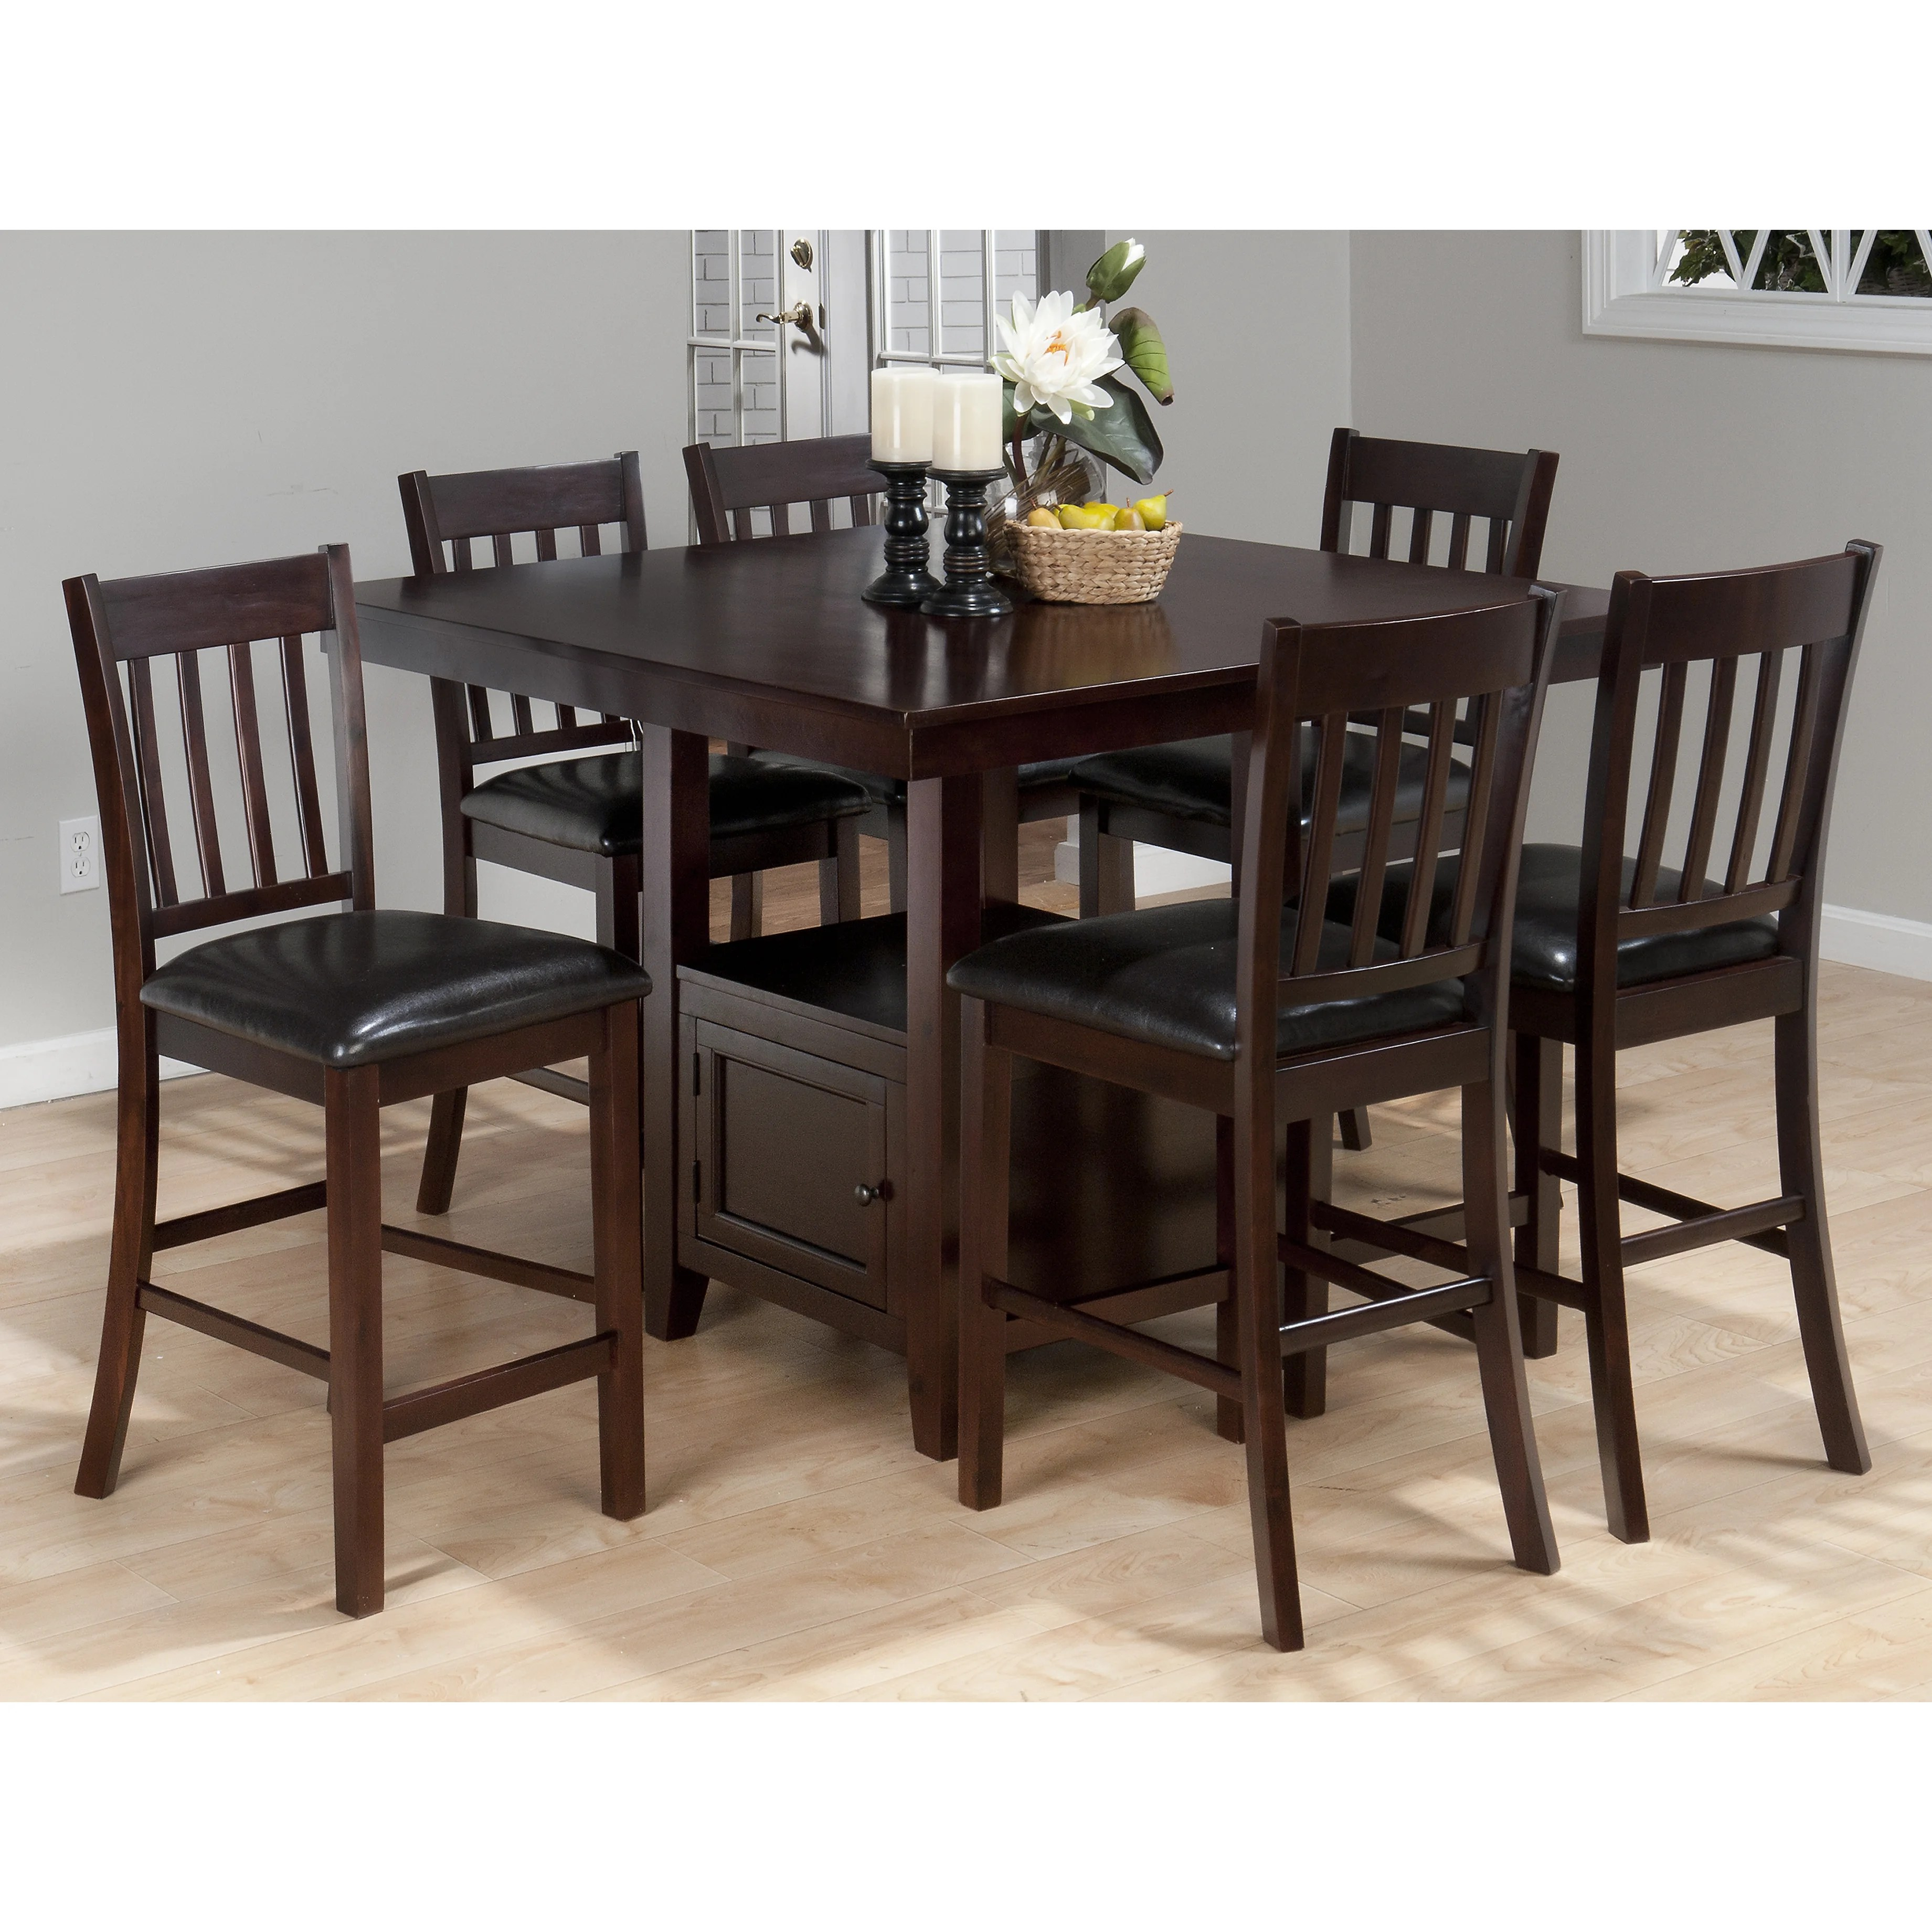 kitchen dining tables c a~ counter height kitchen tables QUICK VIEW Oakmeadow Counter Height Dining Table